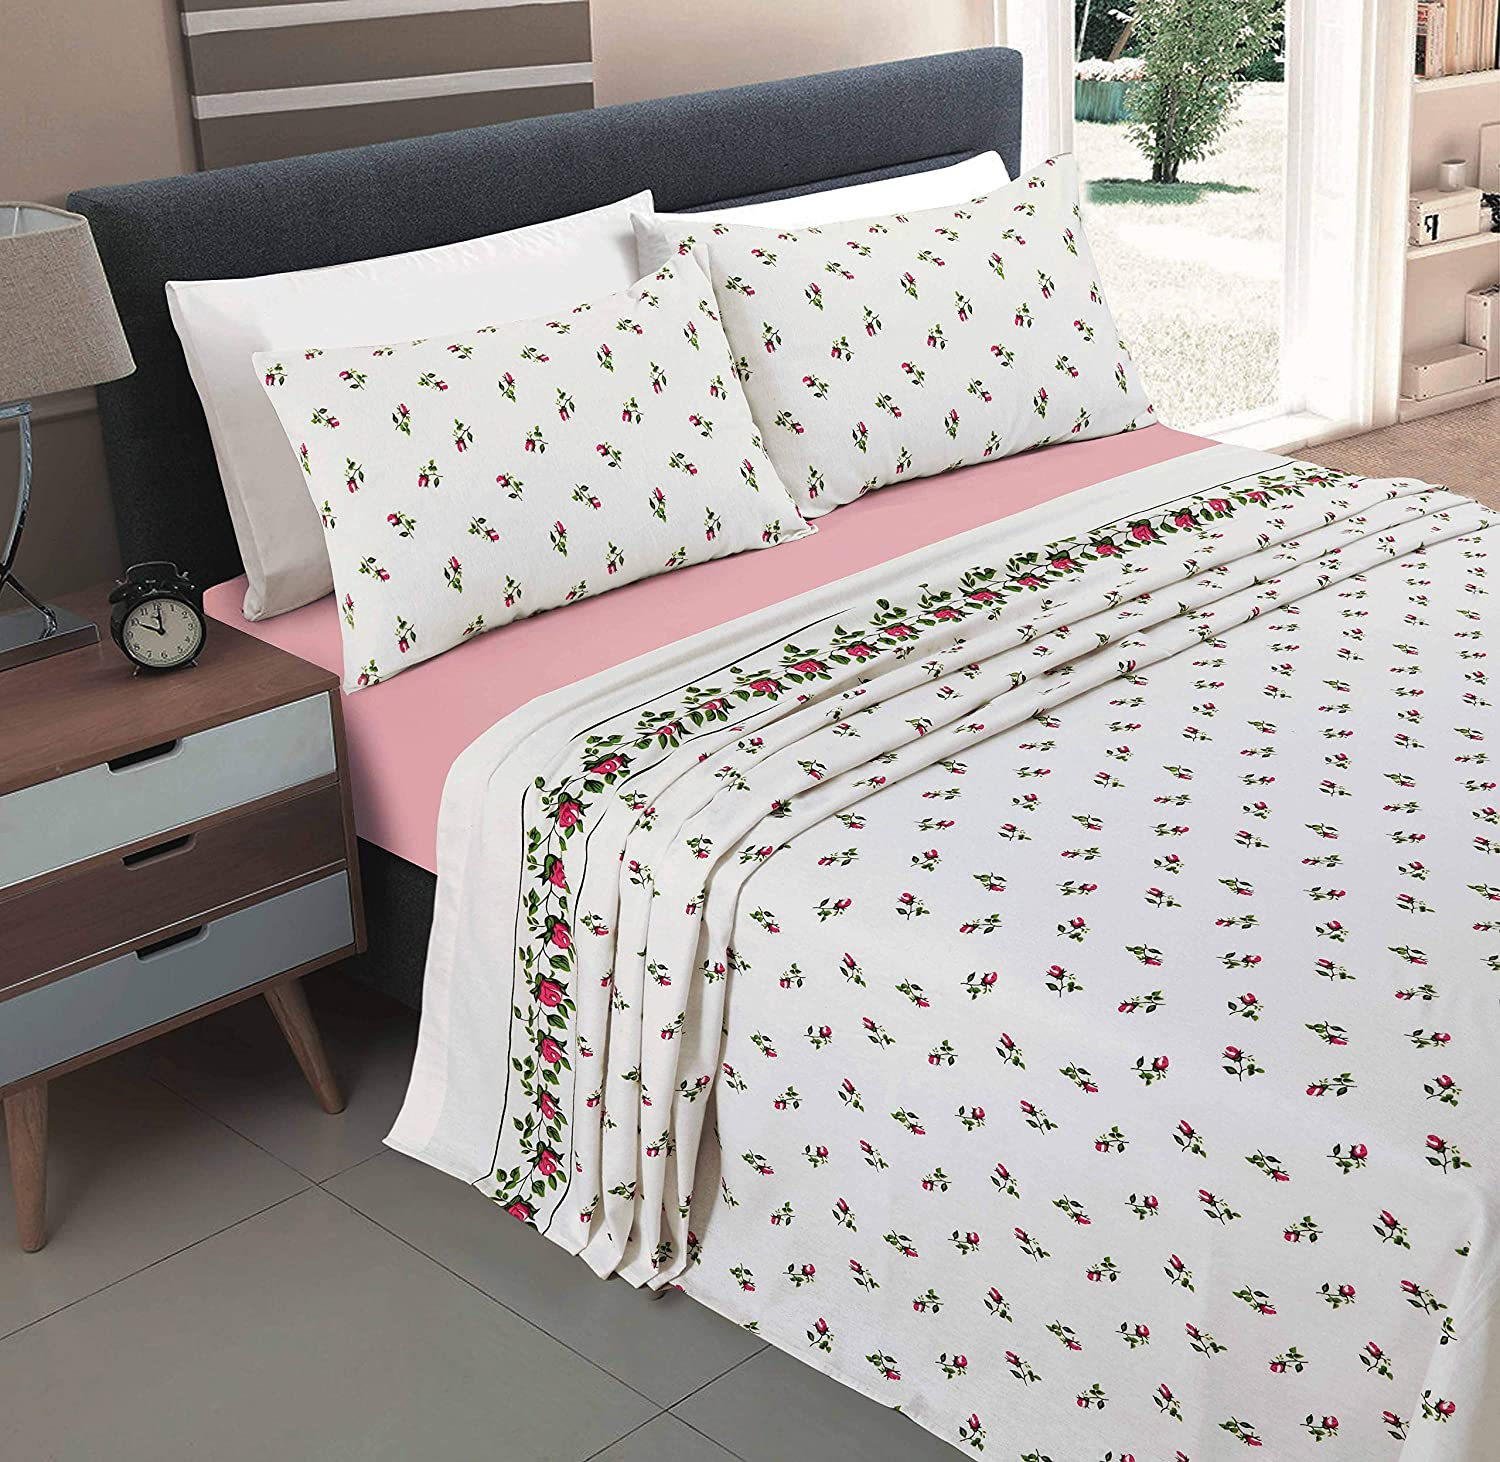 Nz Rose Bud Floral Pattern Flannelette 100 Natural Brushed Cotton Thermal Fitted And Flat Sheet Set With Pillowcases Pink King Size Sheet Set Amazon Co Uk Kitchen Home